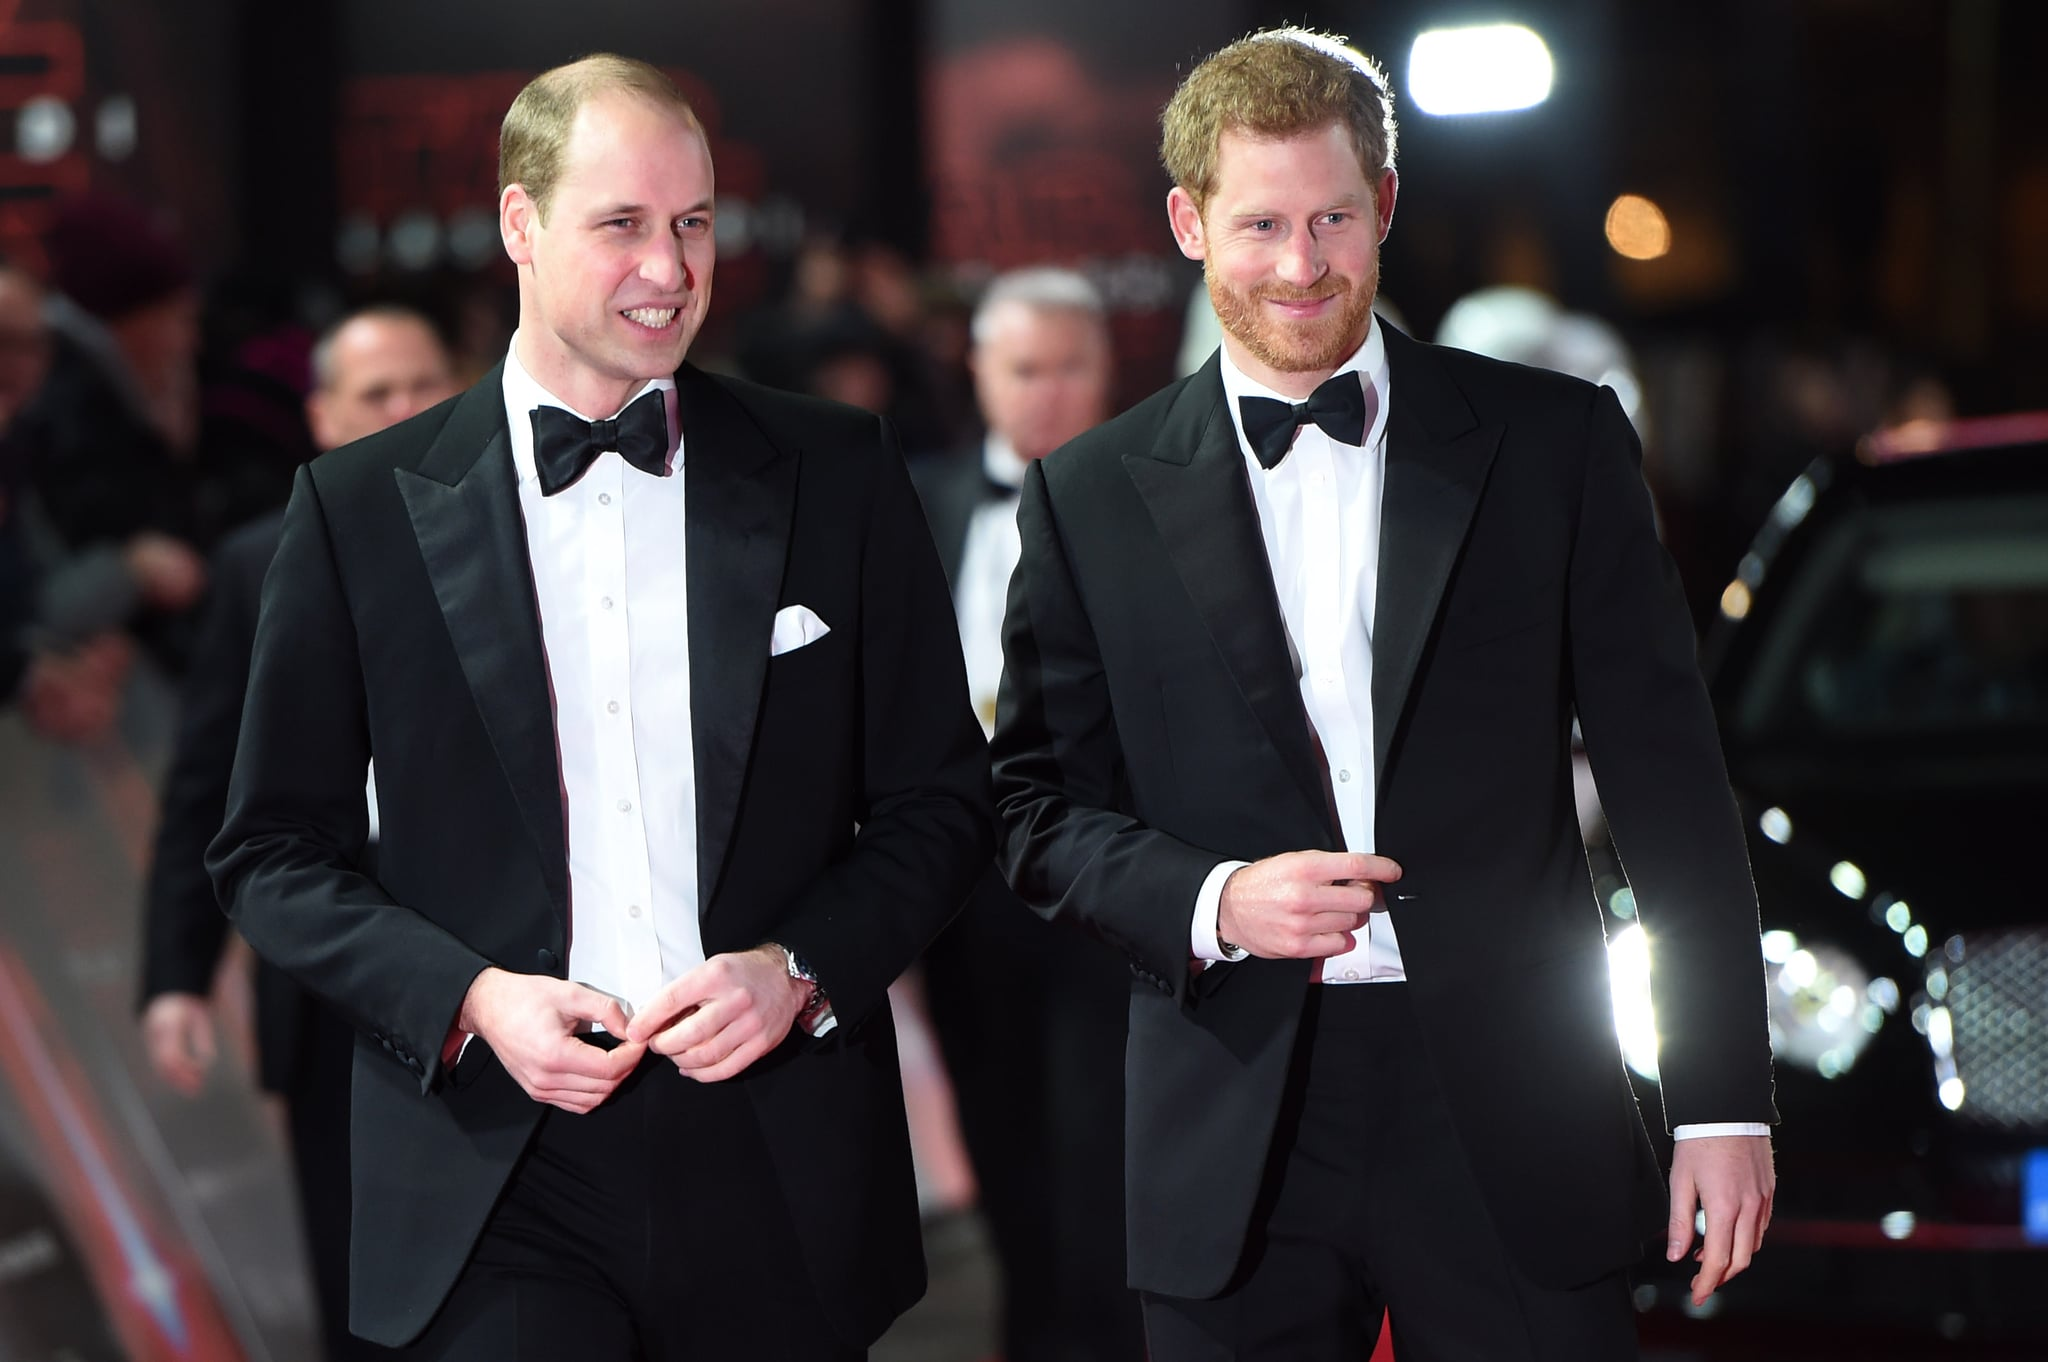 LONDON, ENGLAND - DECEMBER 12: (L-R) Prince William, Duke of Cambridge and Prince Harry attend the European Premiere of 'Star Wars: The Last Jedi' at Royal Albert Hall on December 12, 2017 in London, England.  (Photo by Eddie Mulholland - WPA Pool/Getty Images)